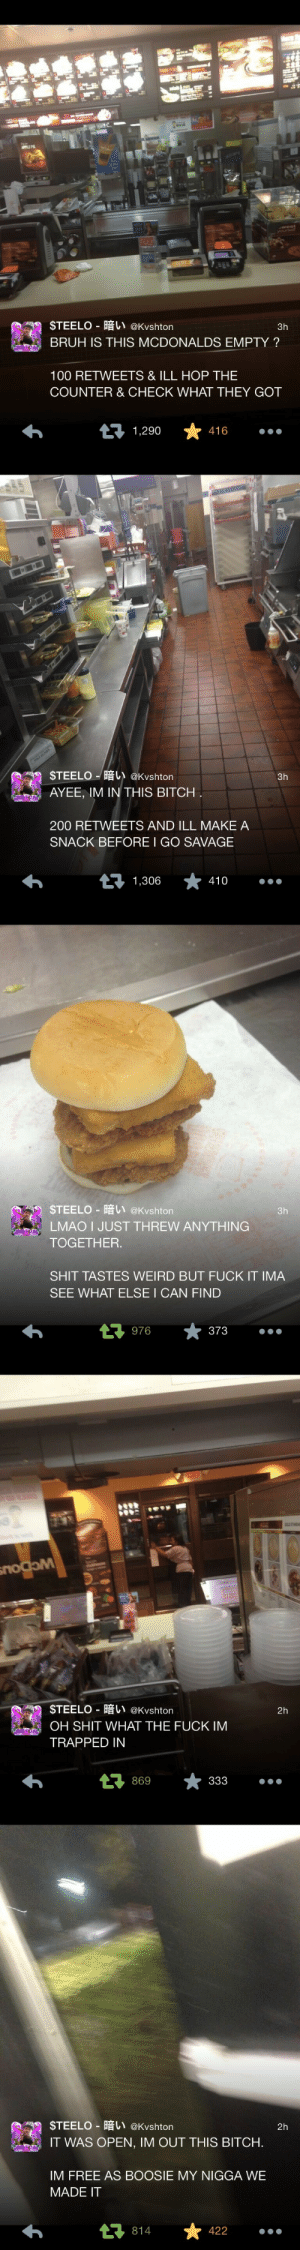 dollyx:  crying: STEELO-暗い@Kvshton  BRUH IS THIS MCDONALDS EMPTY?  3h  100 RETWEETS & ILL HOP THE  COUNTER & CHECK WHAT THEY GOT  1,290  416   $TEELO-暗い@Kvshton  AYEE, IM IN THIS BITCH  3h  200 RETWEETS AND ILL MAKE A  SNACK BEFORE I GO SAVAGE  410   STEELO-暗い@Kvshton  TOGETHER  SHIT TASTES WEIRD BUT FUCK IT IMA  3h  LMAO I JUST THREW ANYTHING  SEE WHAT ELSE I CAN FIND  976  *373   | $TEELO-暗い@kvshton  2h  OH SHIT WHAT THE FUCK IM  TRAPPED IN  869   STEELO-暗い@Kvshton  2h  IT WAS OPEN, IM OUT THIS BITCH.  IM FREE AS BOOSIE MY NIGGA WE  MADE IT  *422  814 dollyx:  crying